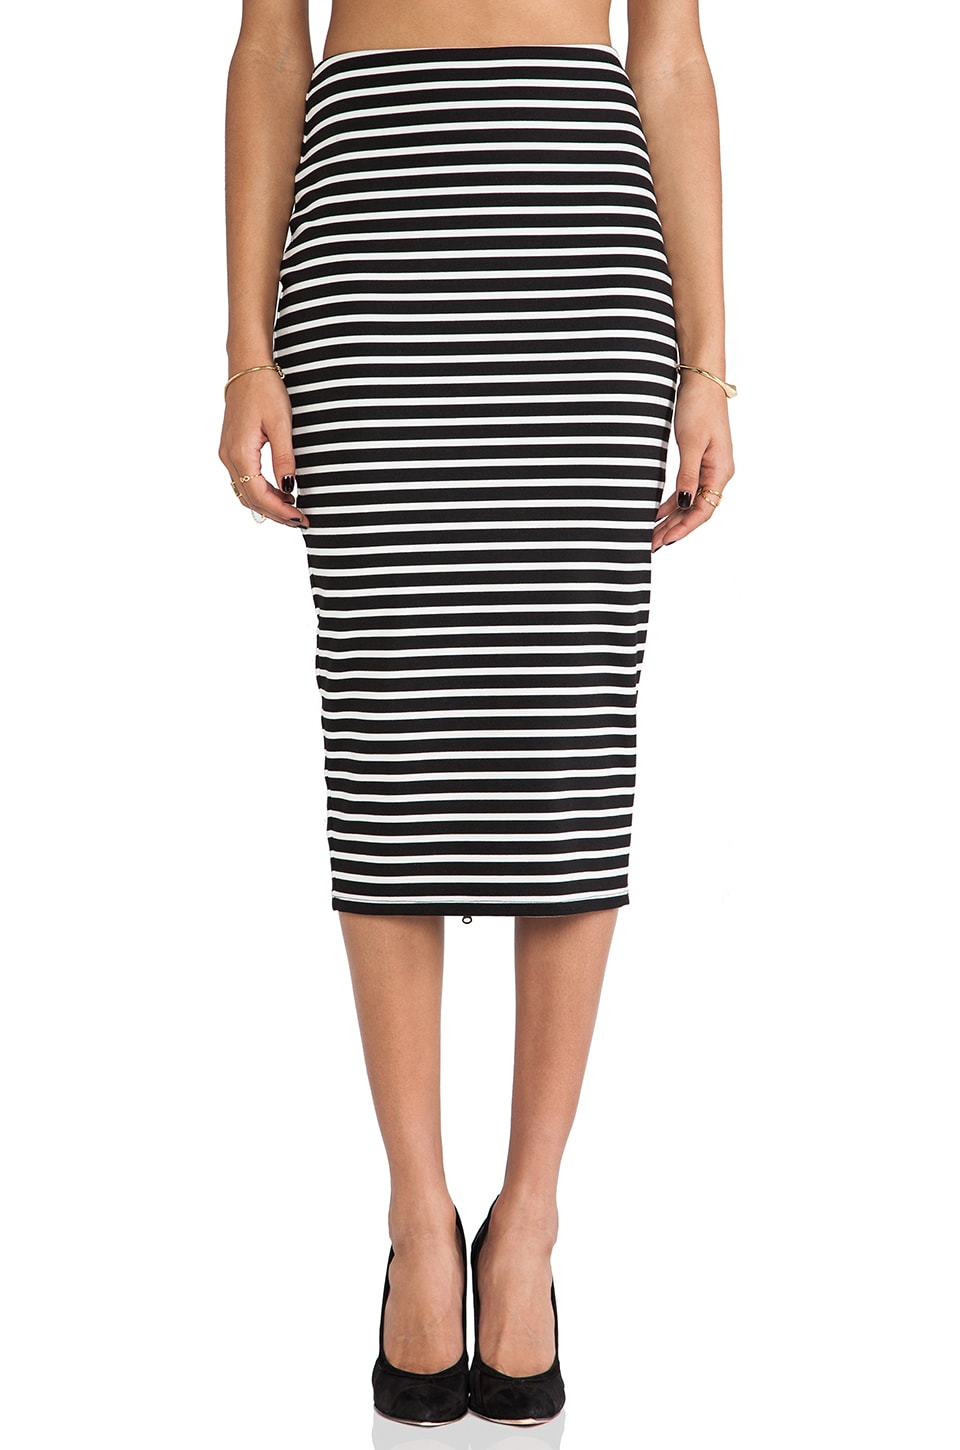 Nookie Maestro Pencil Skirt in Black